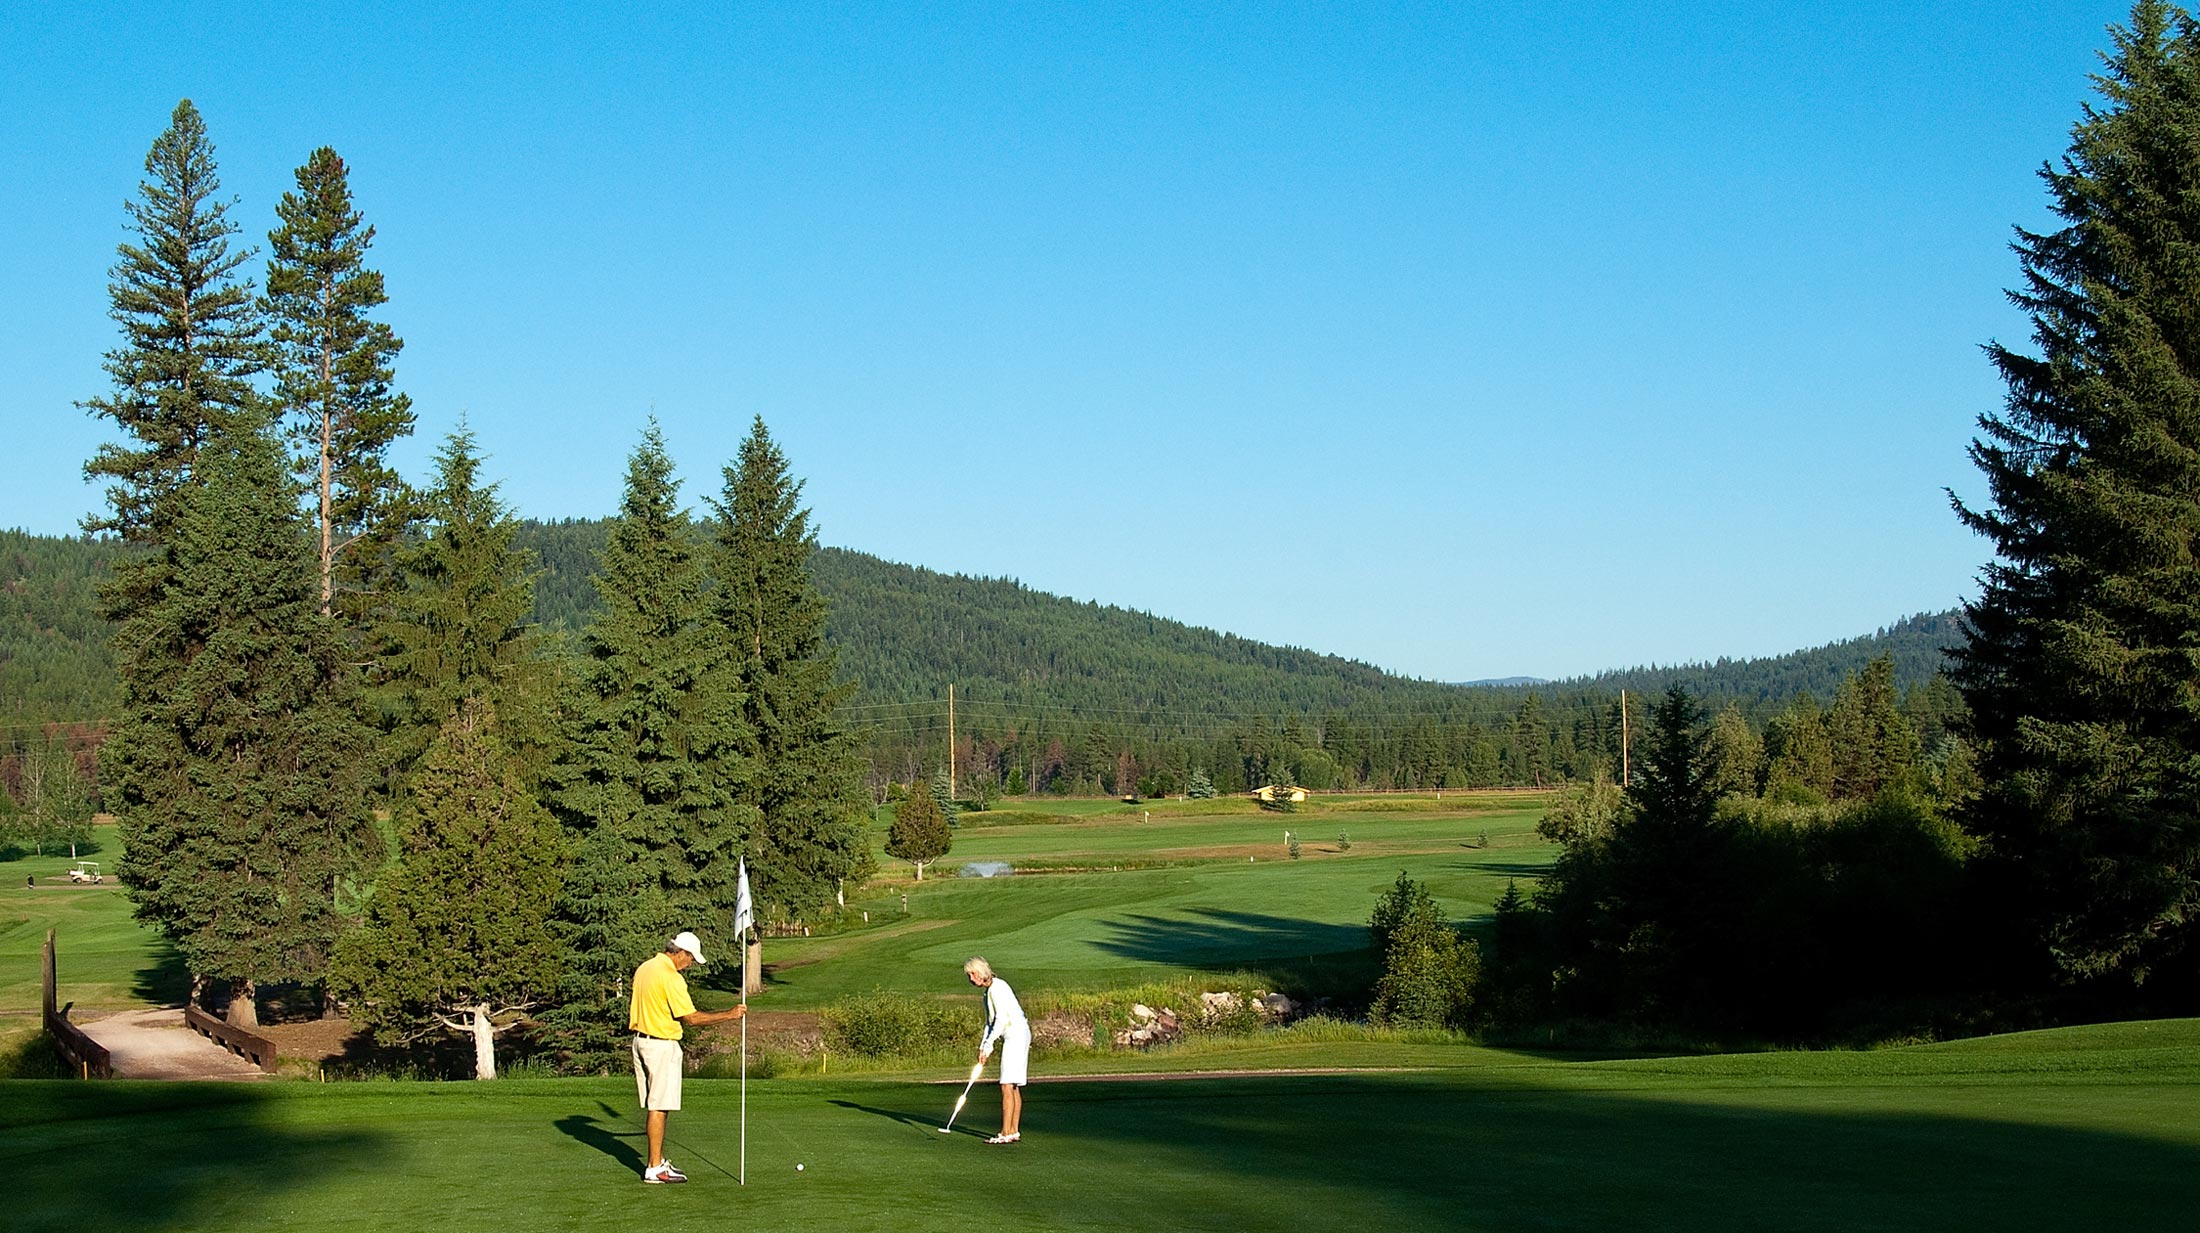 Take in the fall scenic views in Western Montana by playing a round of golf while admiring the Tamarack trees and snowcapped peaks.